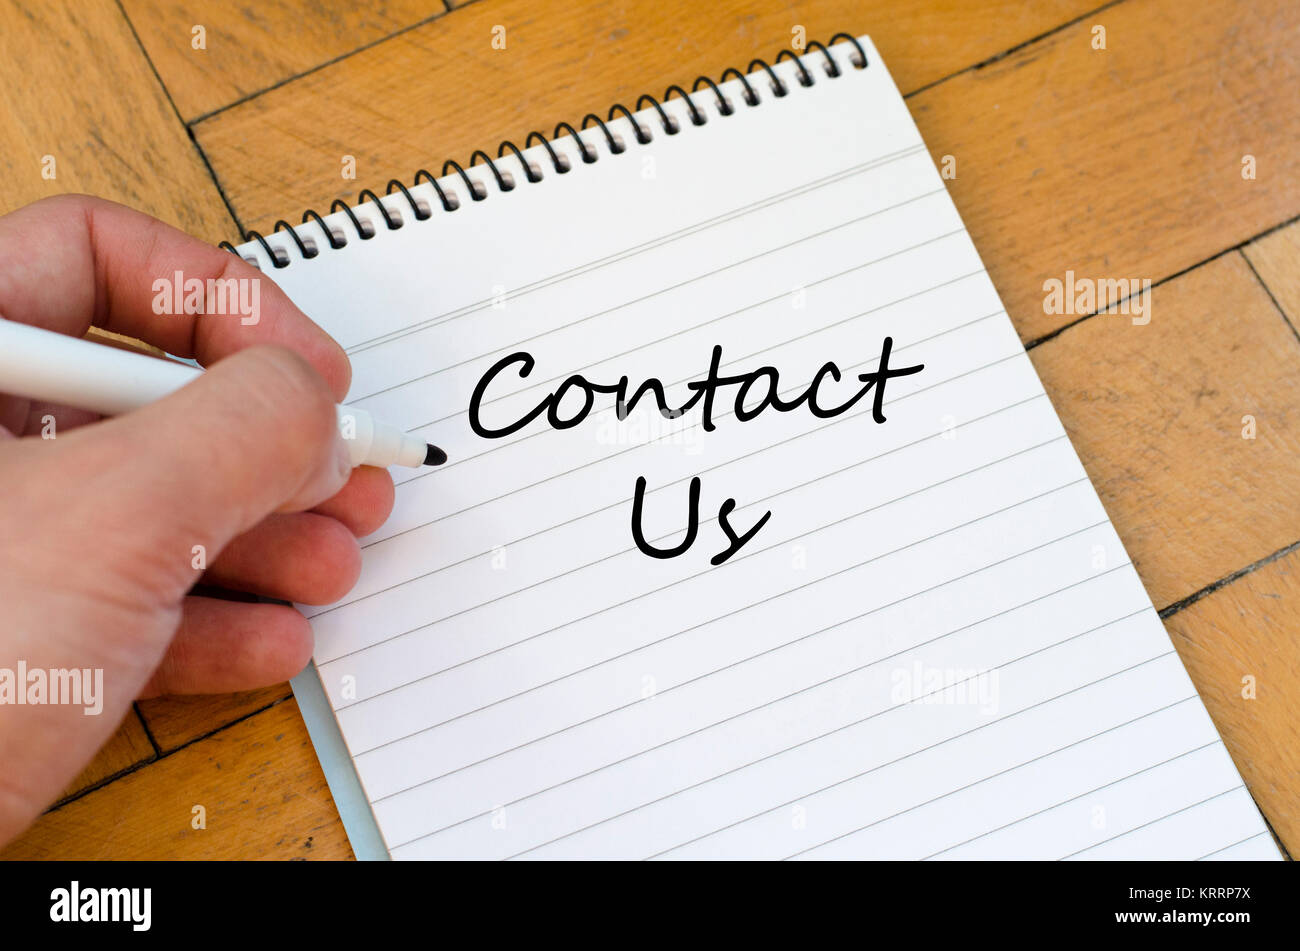 Contact us concept on notebook - Stock Image